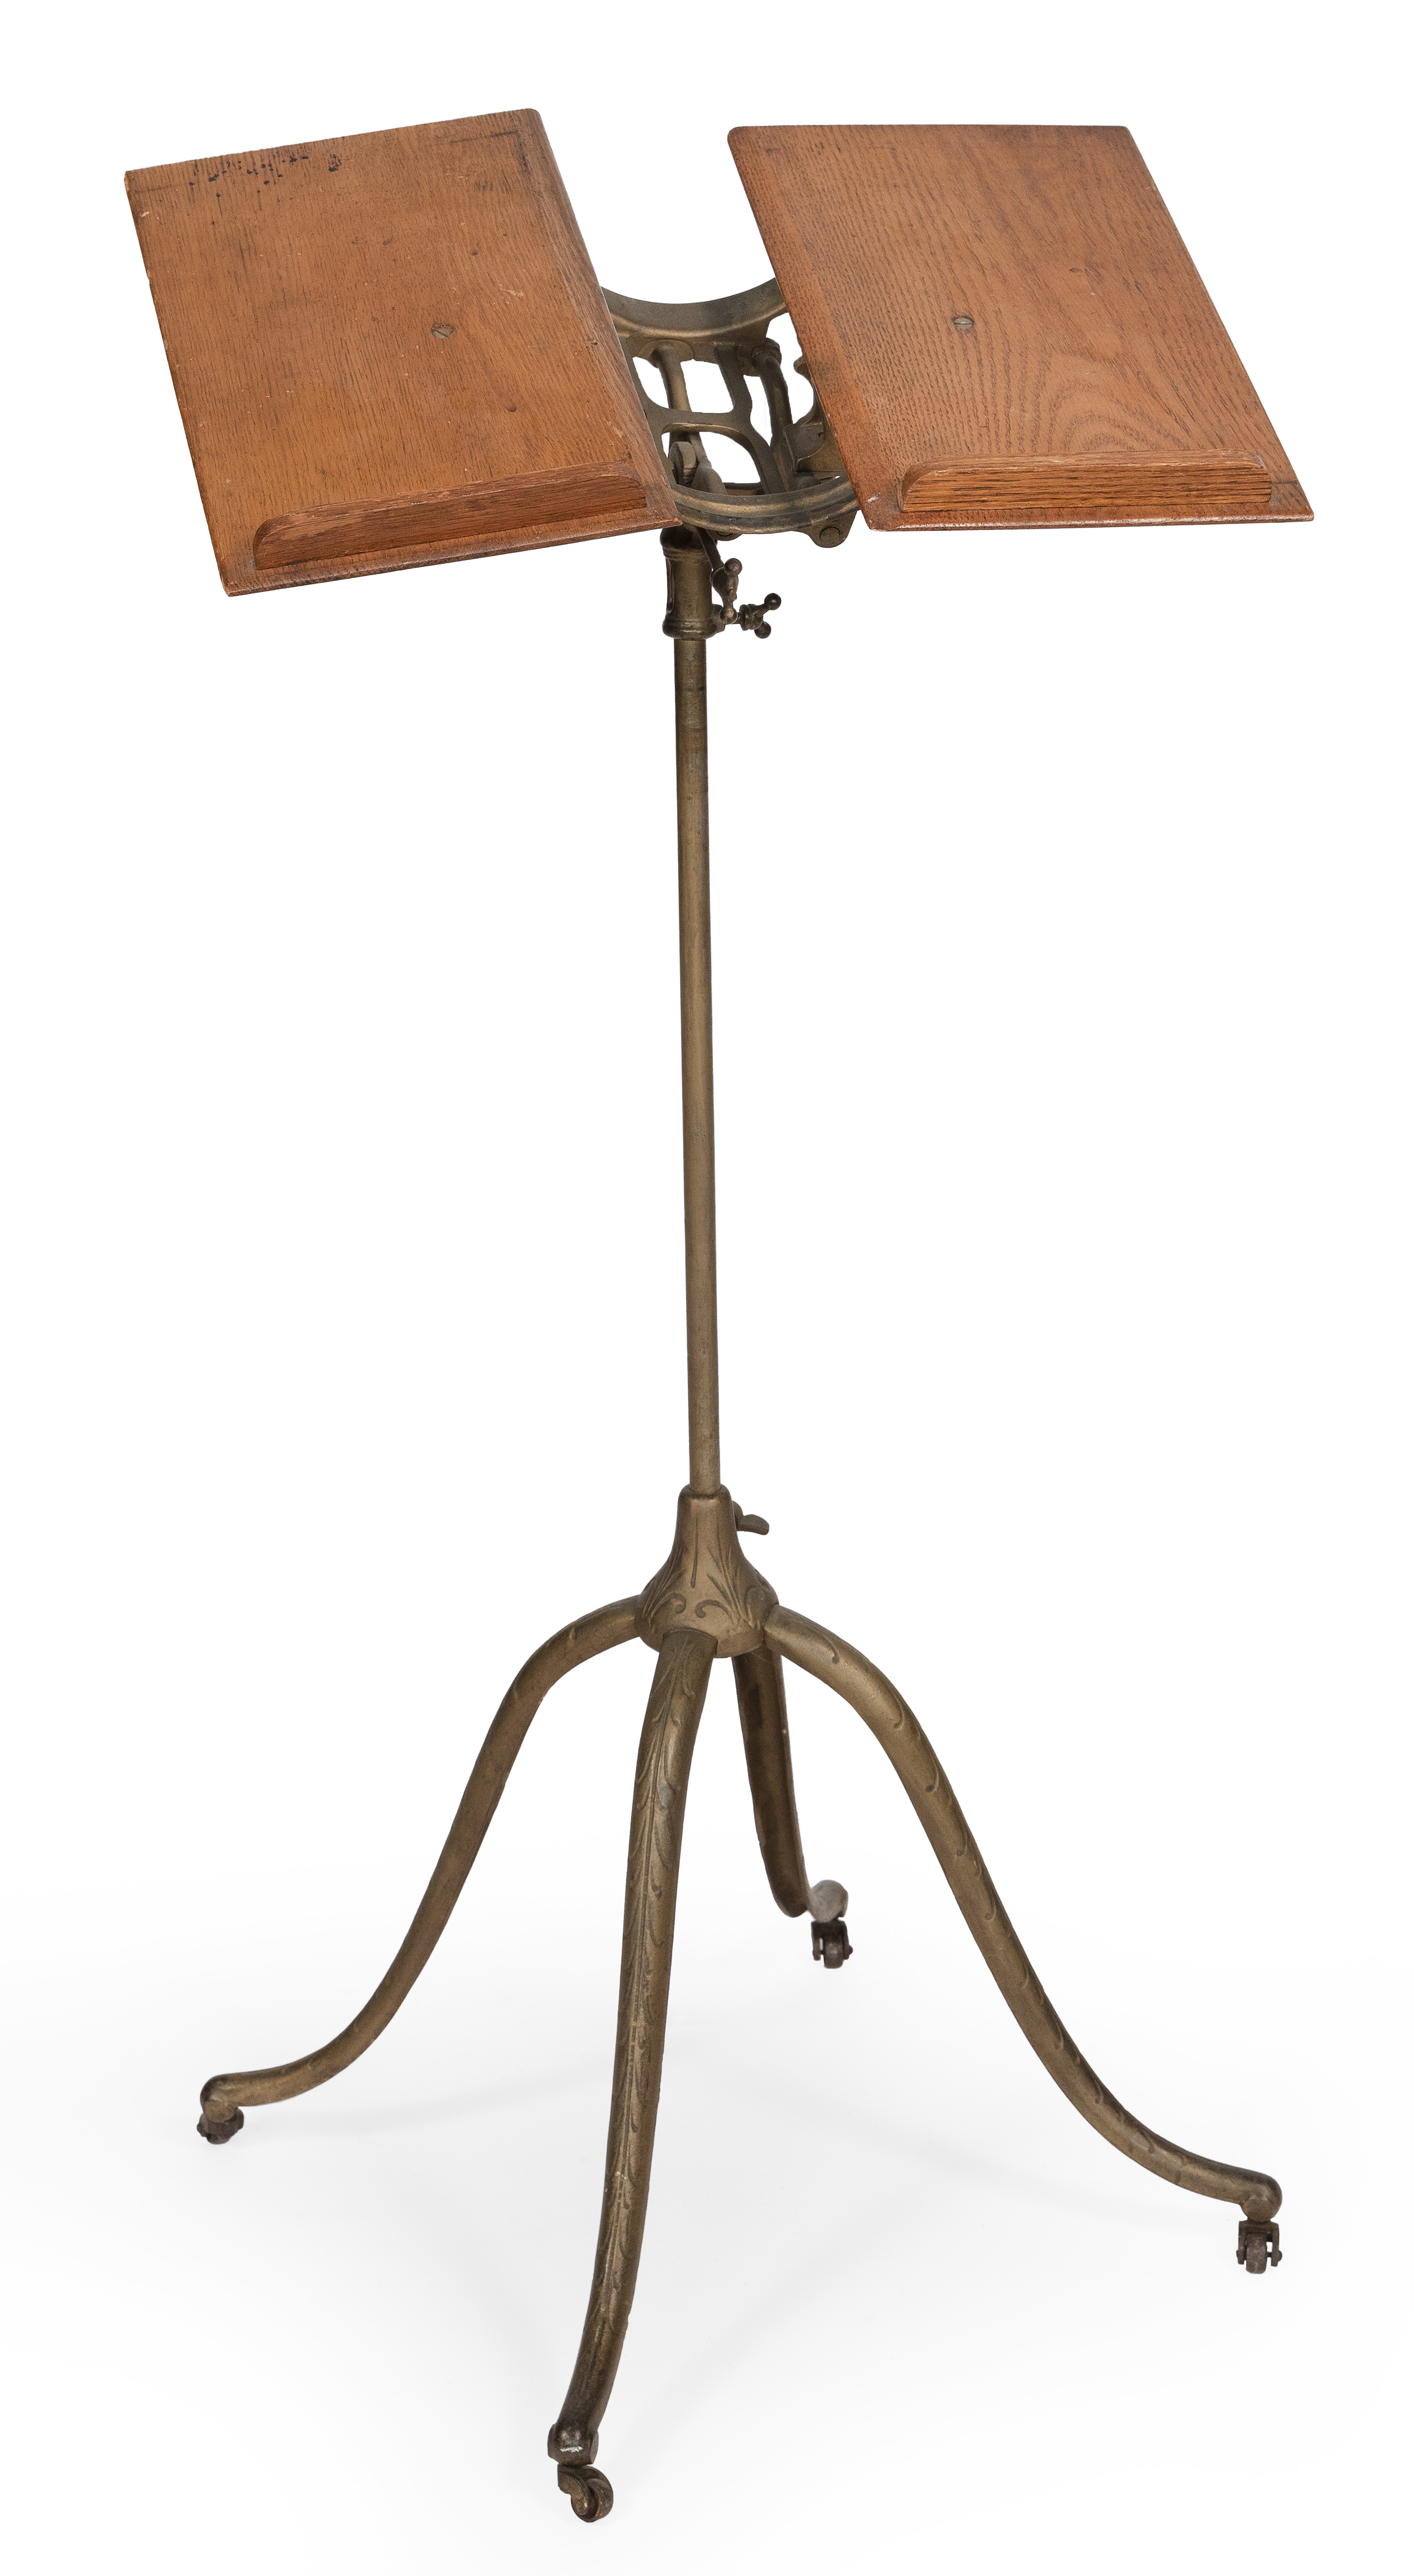 ADJUSTABLE DICTIONARY STAND Circa 1896 Height adjustable. Length and width approx. 17